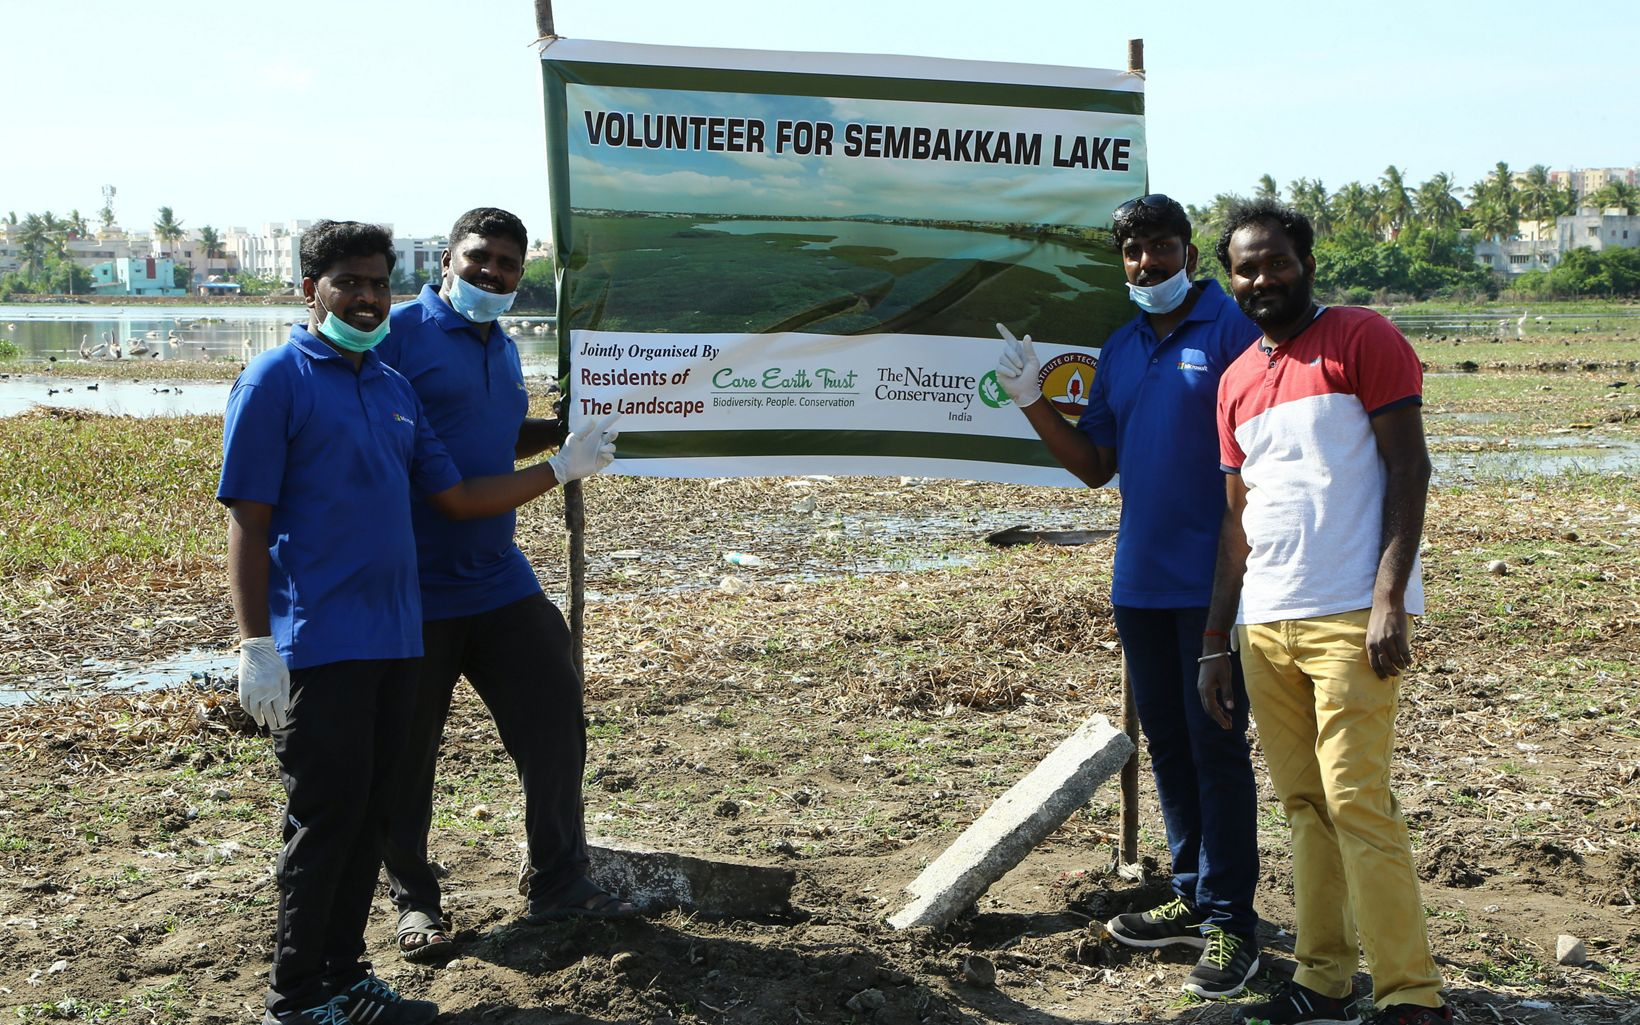 organisations holding the Lake Sembakkam clean up banner